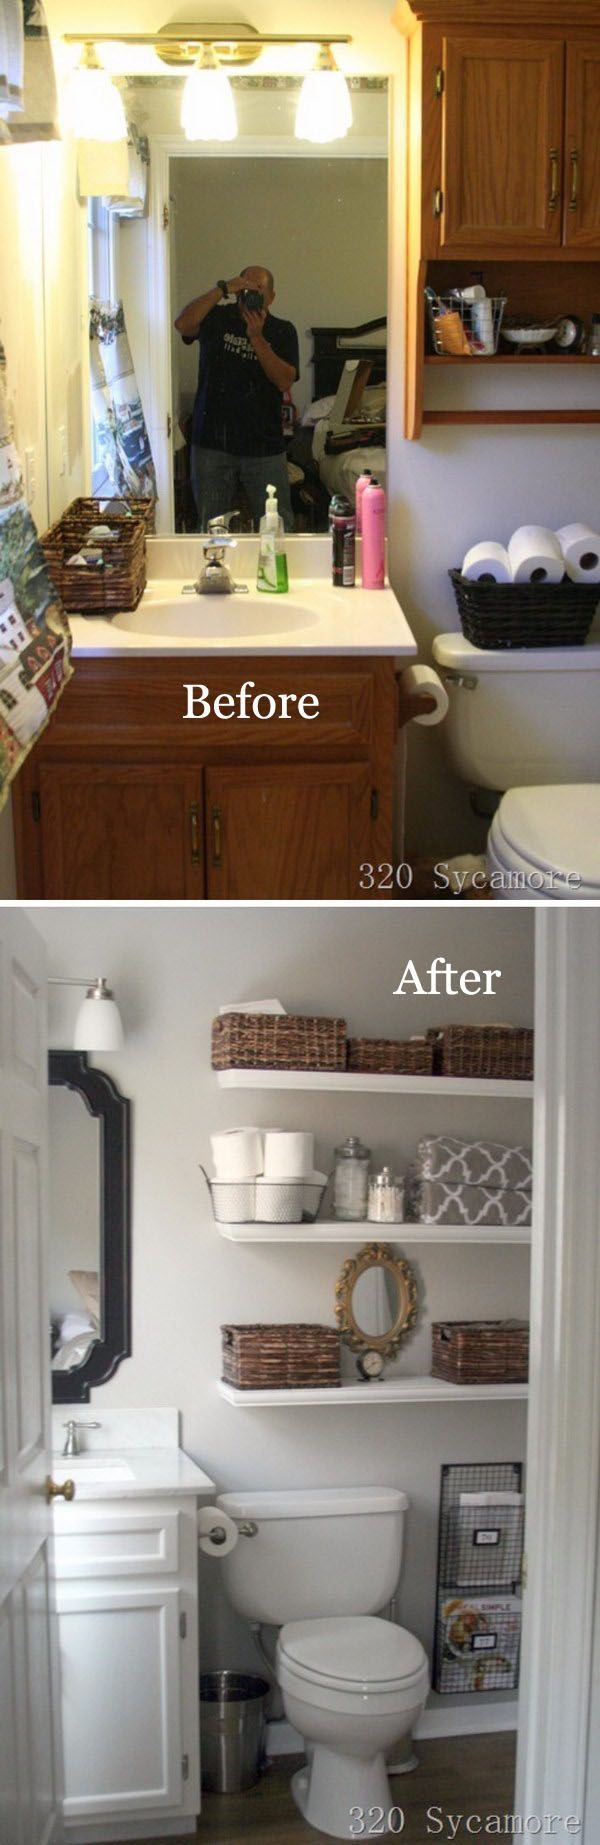 best 25+ small bathroom makeovers ideas only on pinterest | small